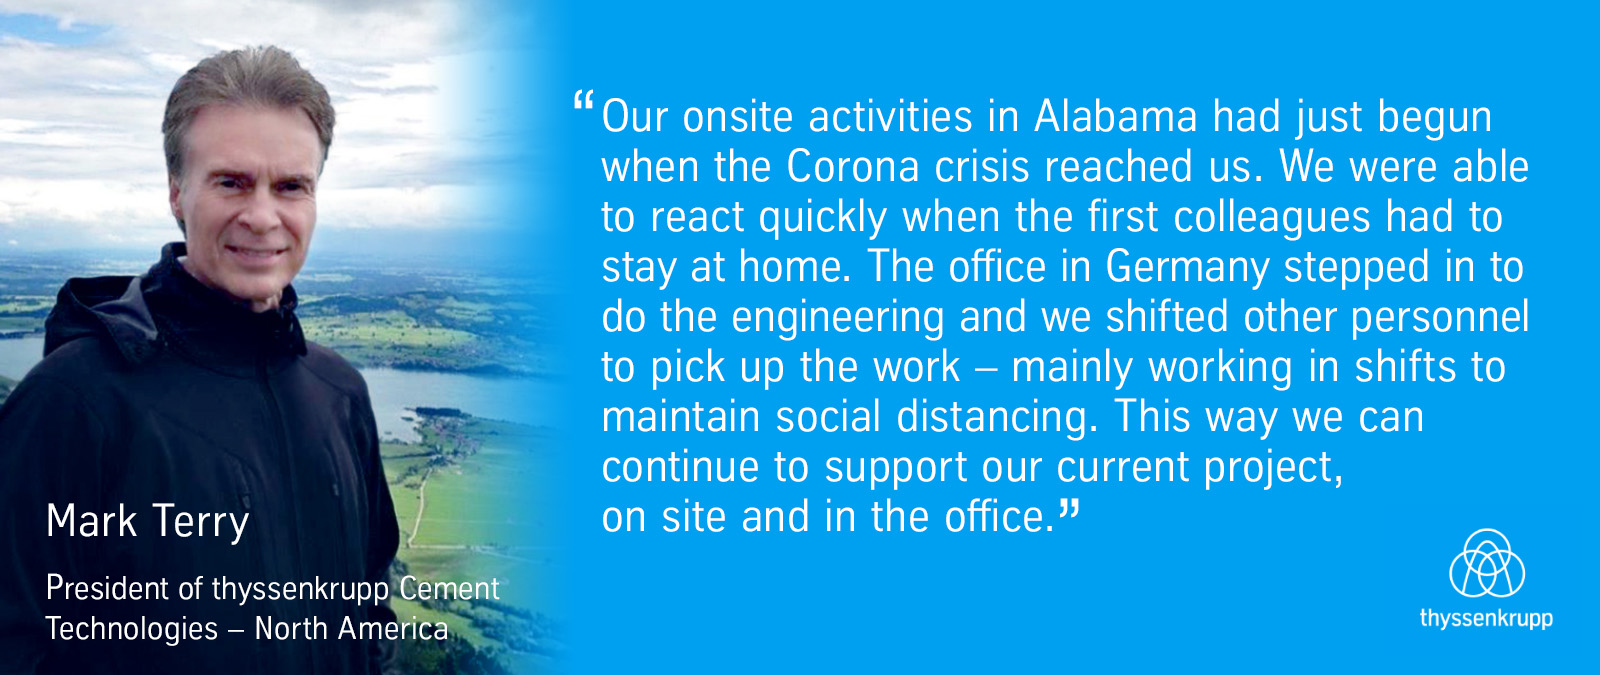 Stepping in for colleagues and support across continents was what kept a project site in Alabama, USA, running.